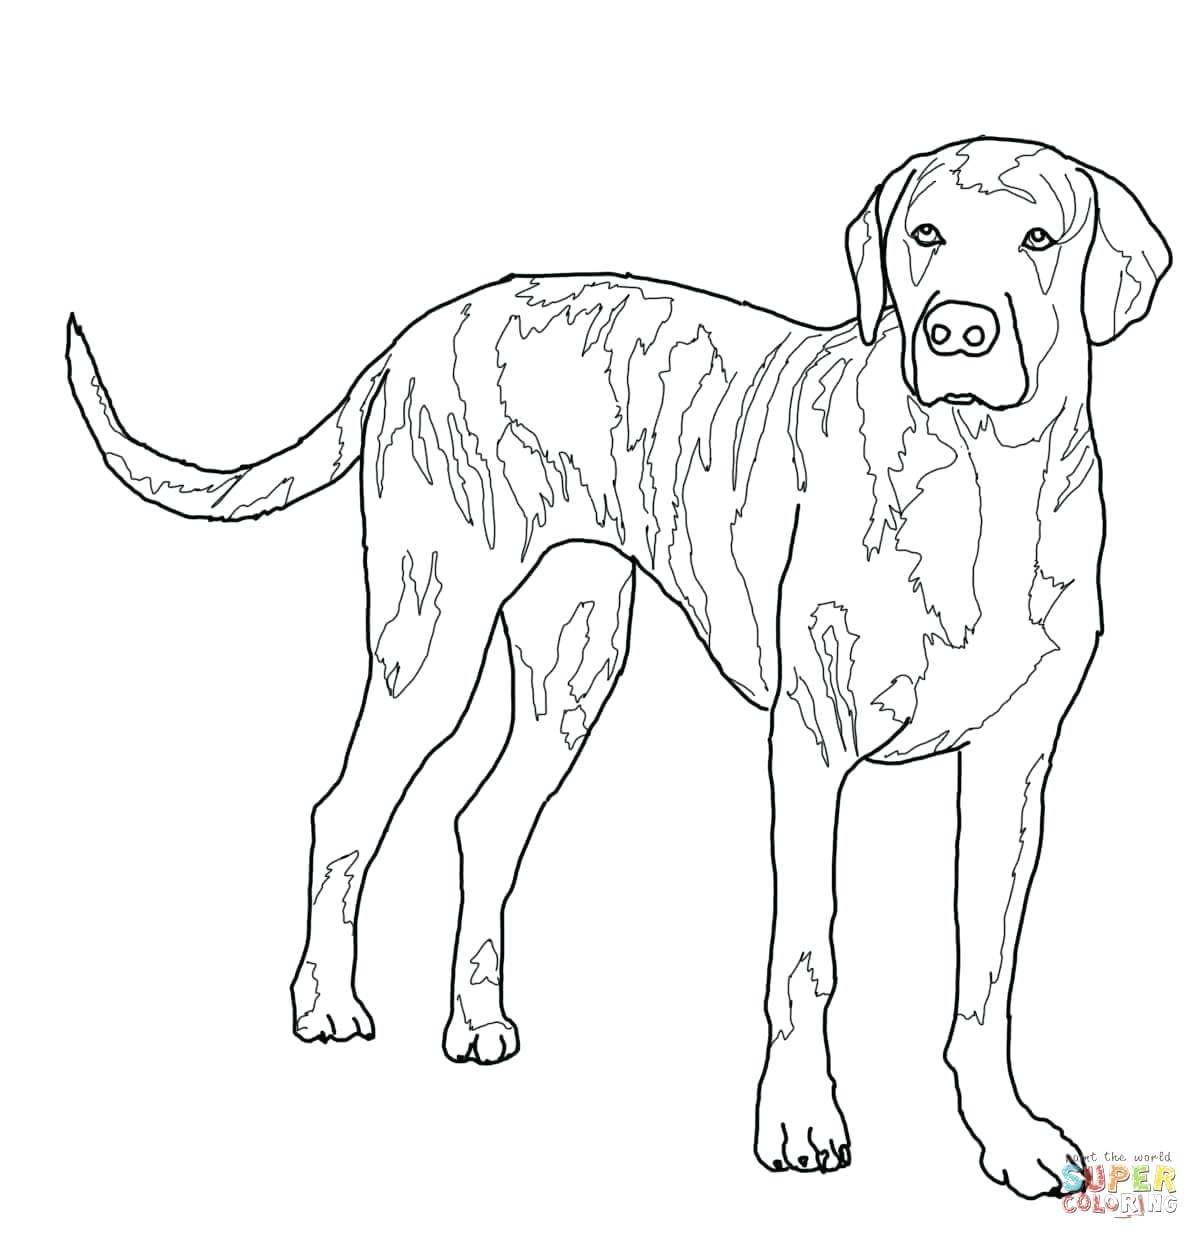 1200x1240 Coloring Lab Coloring Pages Dog Simple Page Face Black. Lab